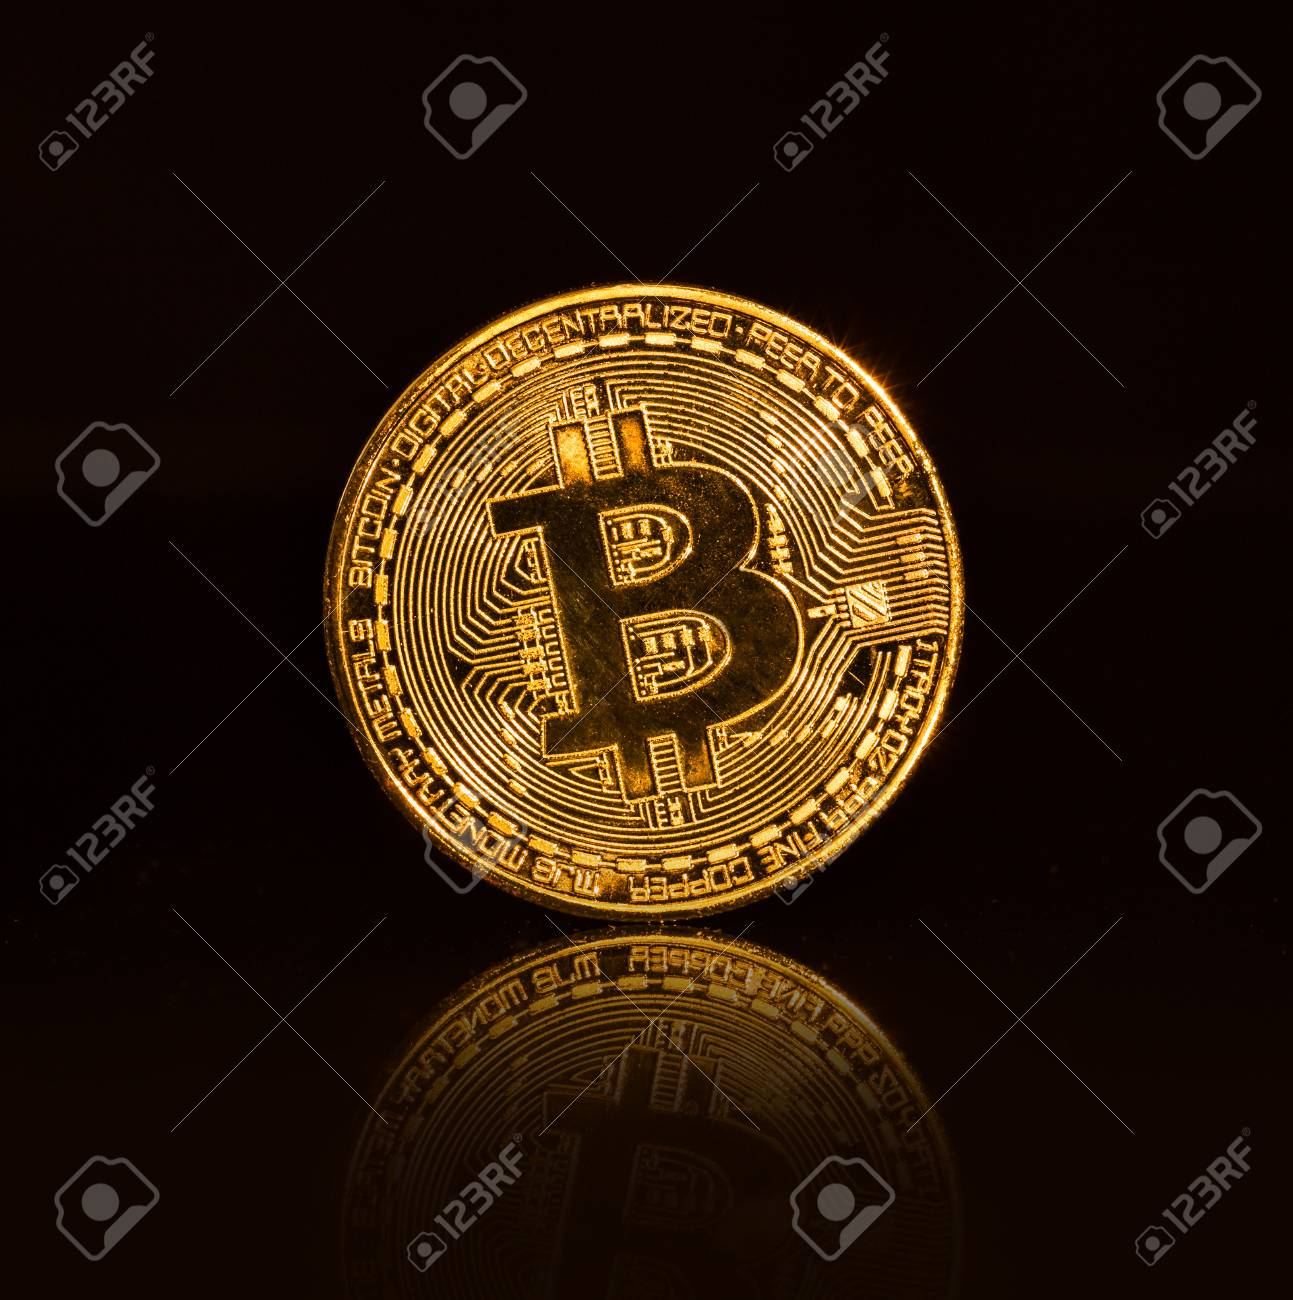 3af0ad03734 Bitcoin gold coins on black background. Virtual cryptocurrency concept.  Stock Photo - 93569027